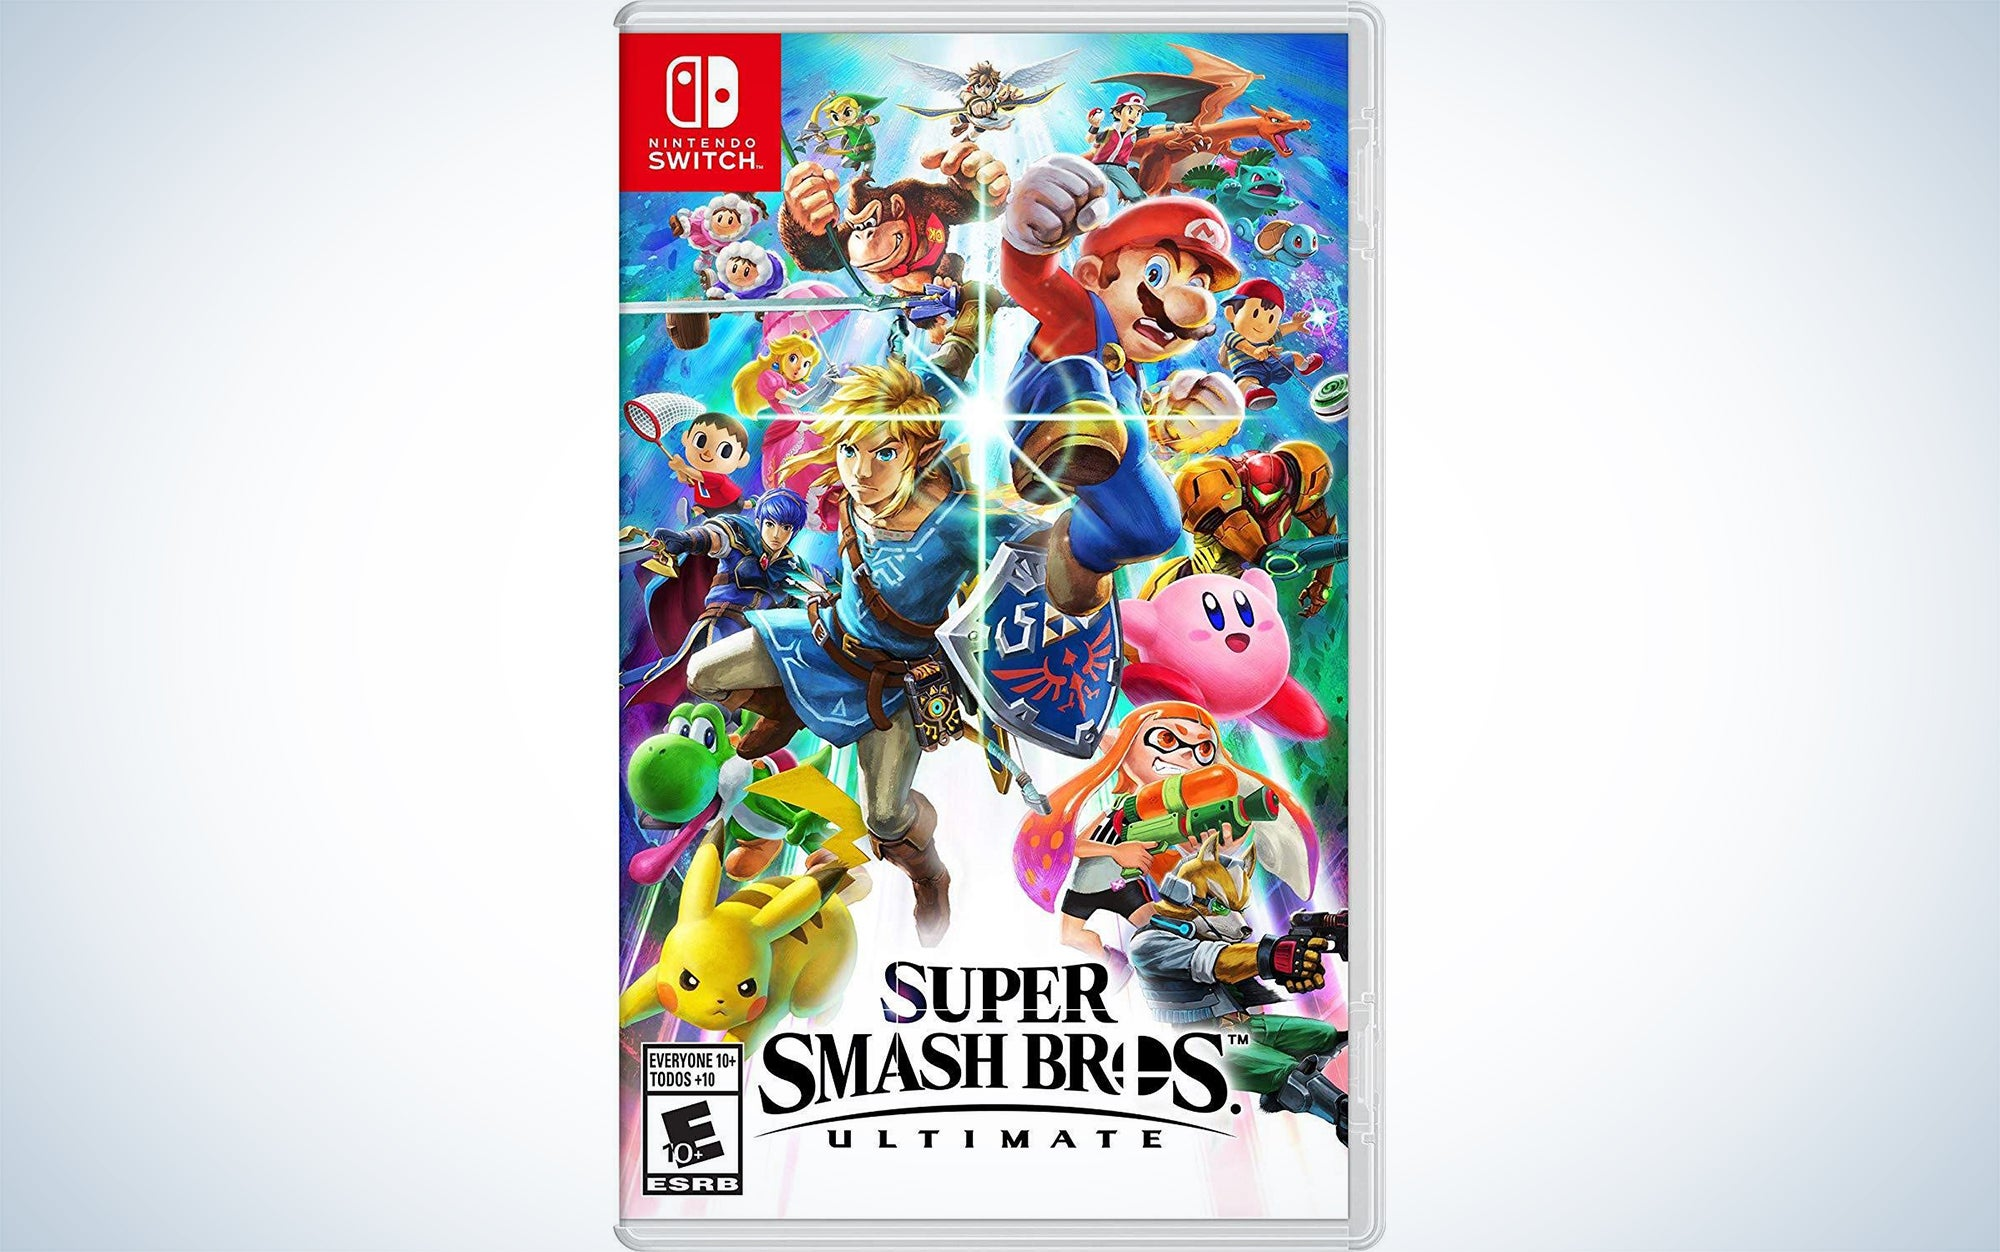 Super Smash Bros. Ultimate is a great game to play on the Nintendo Switch console.